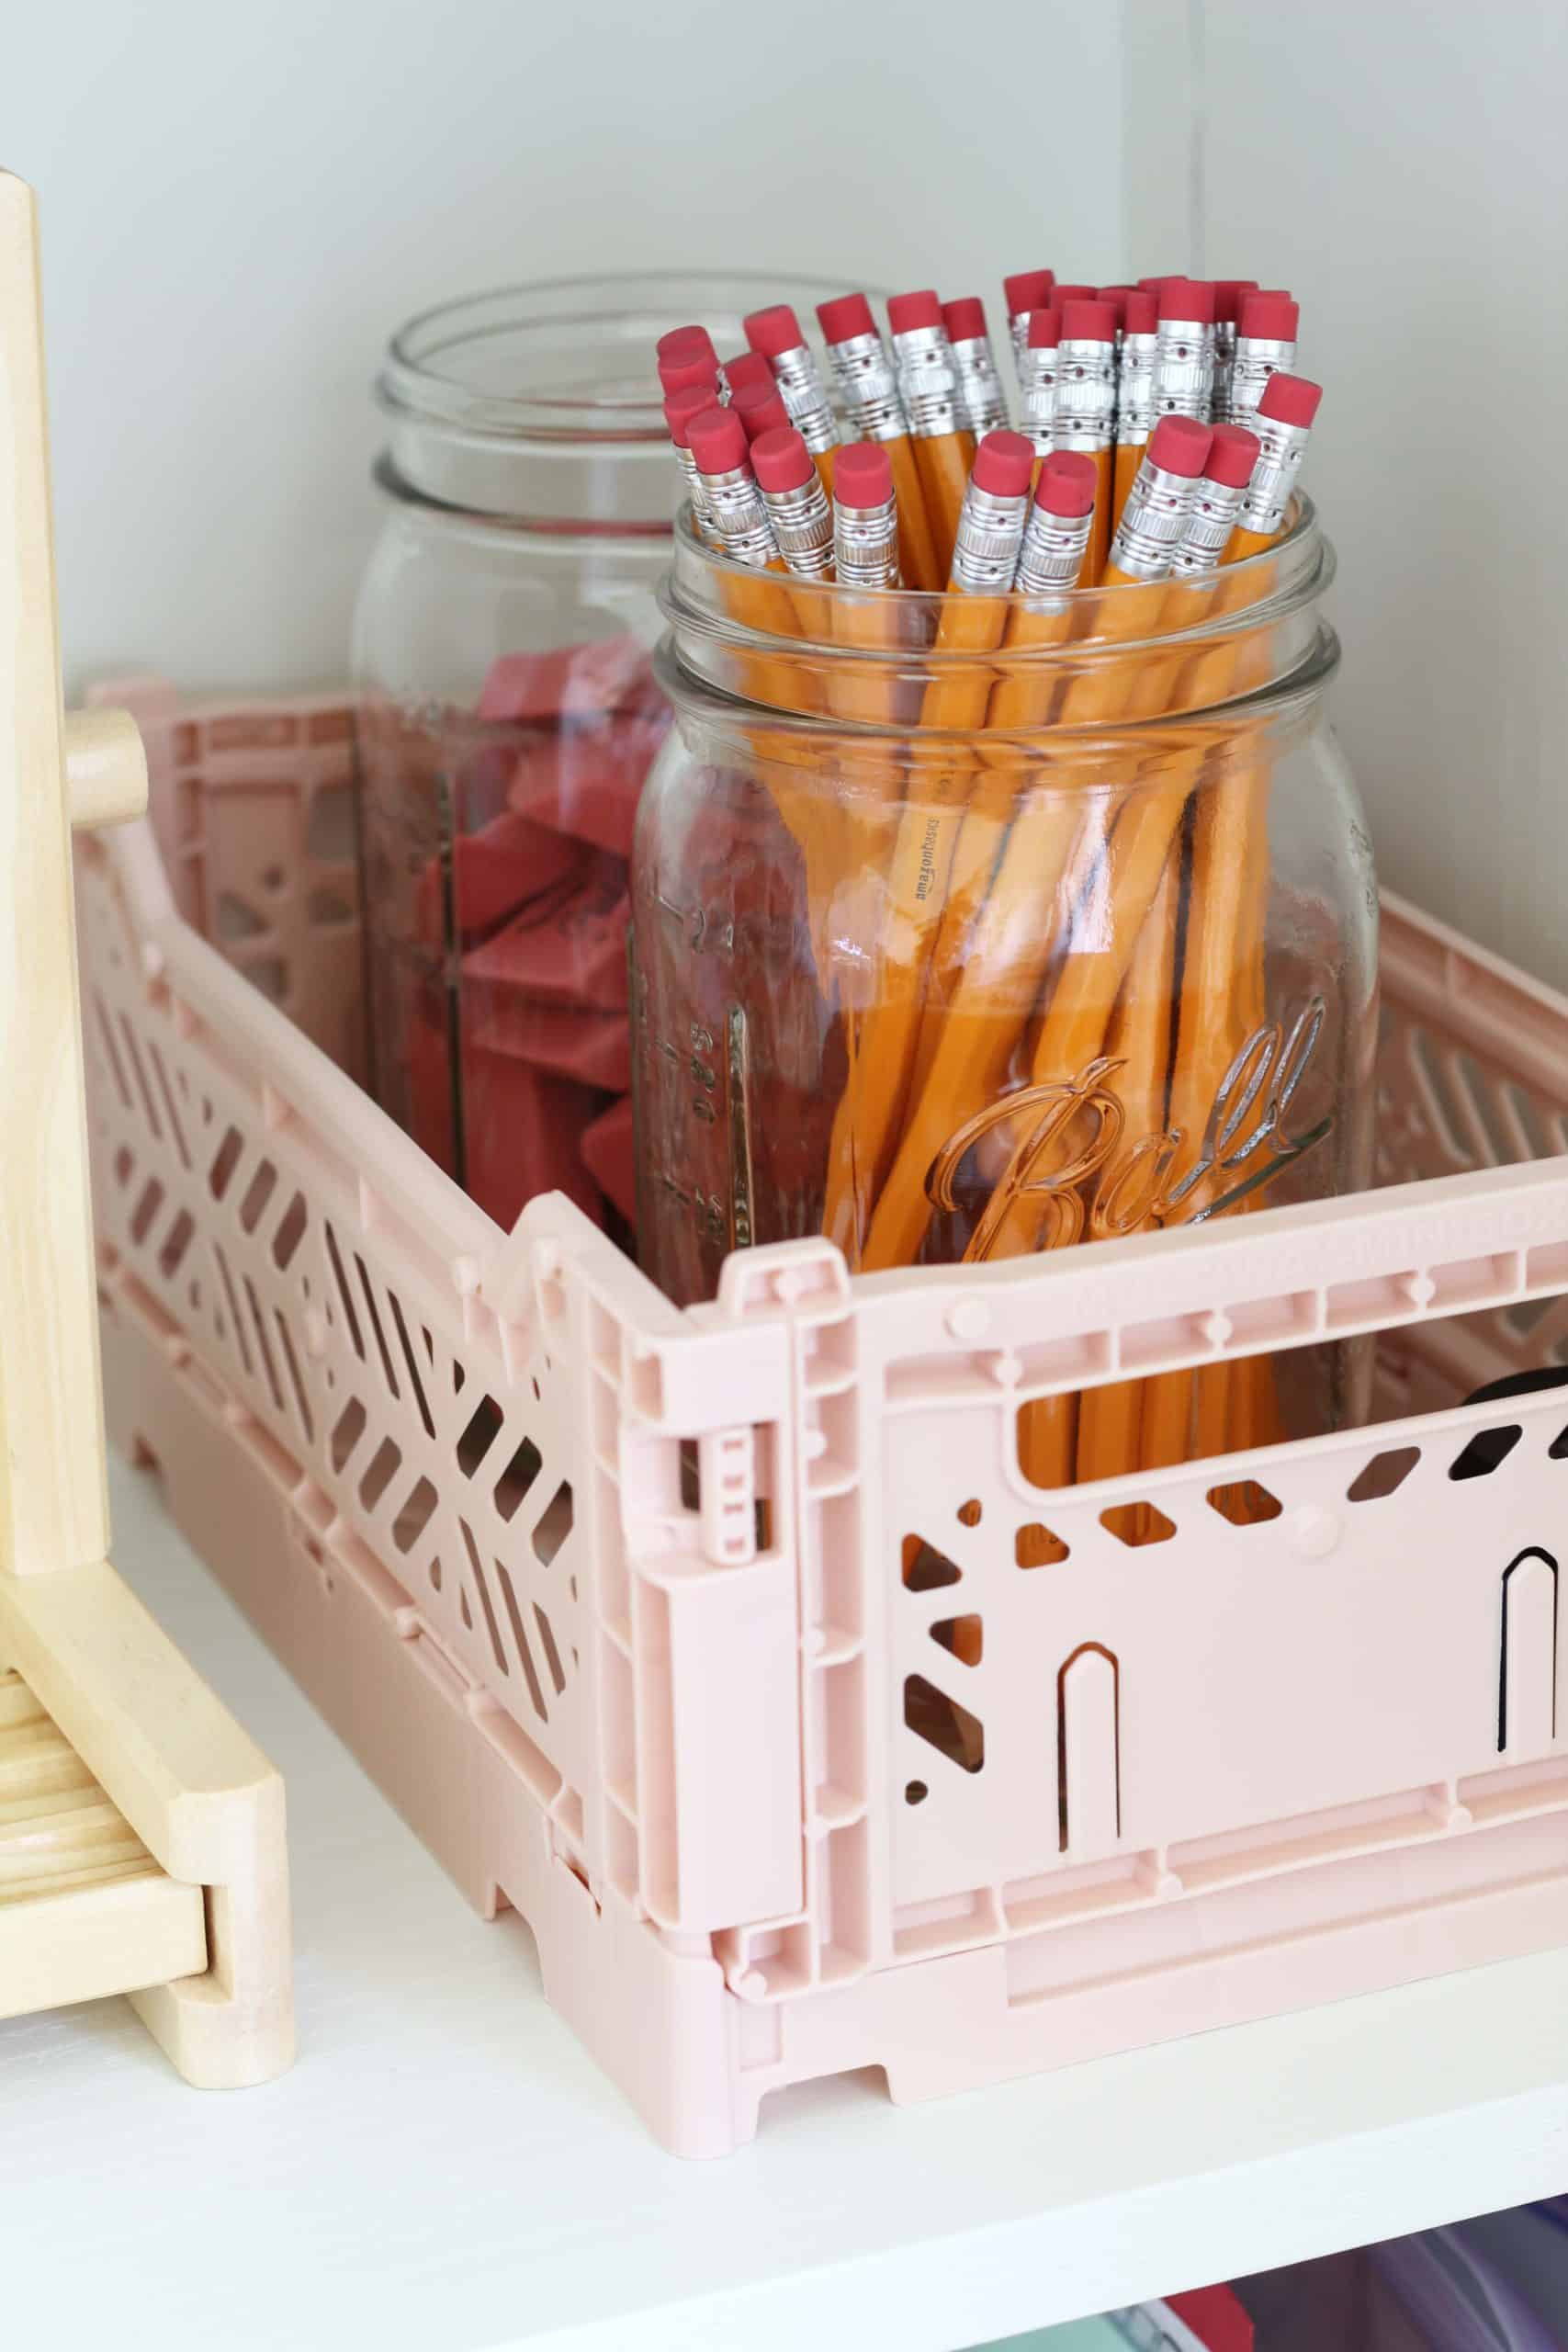 pencils in wide mouth ball jar, pink pearl erasers in wide mouth ball jar, pink hay crate, pink milk crate